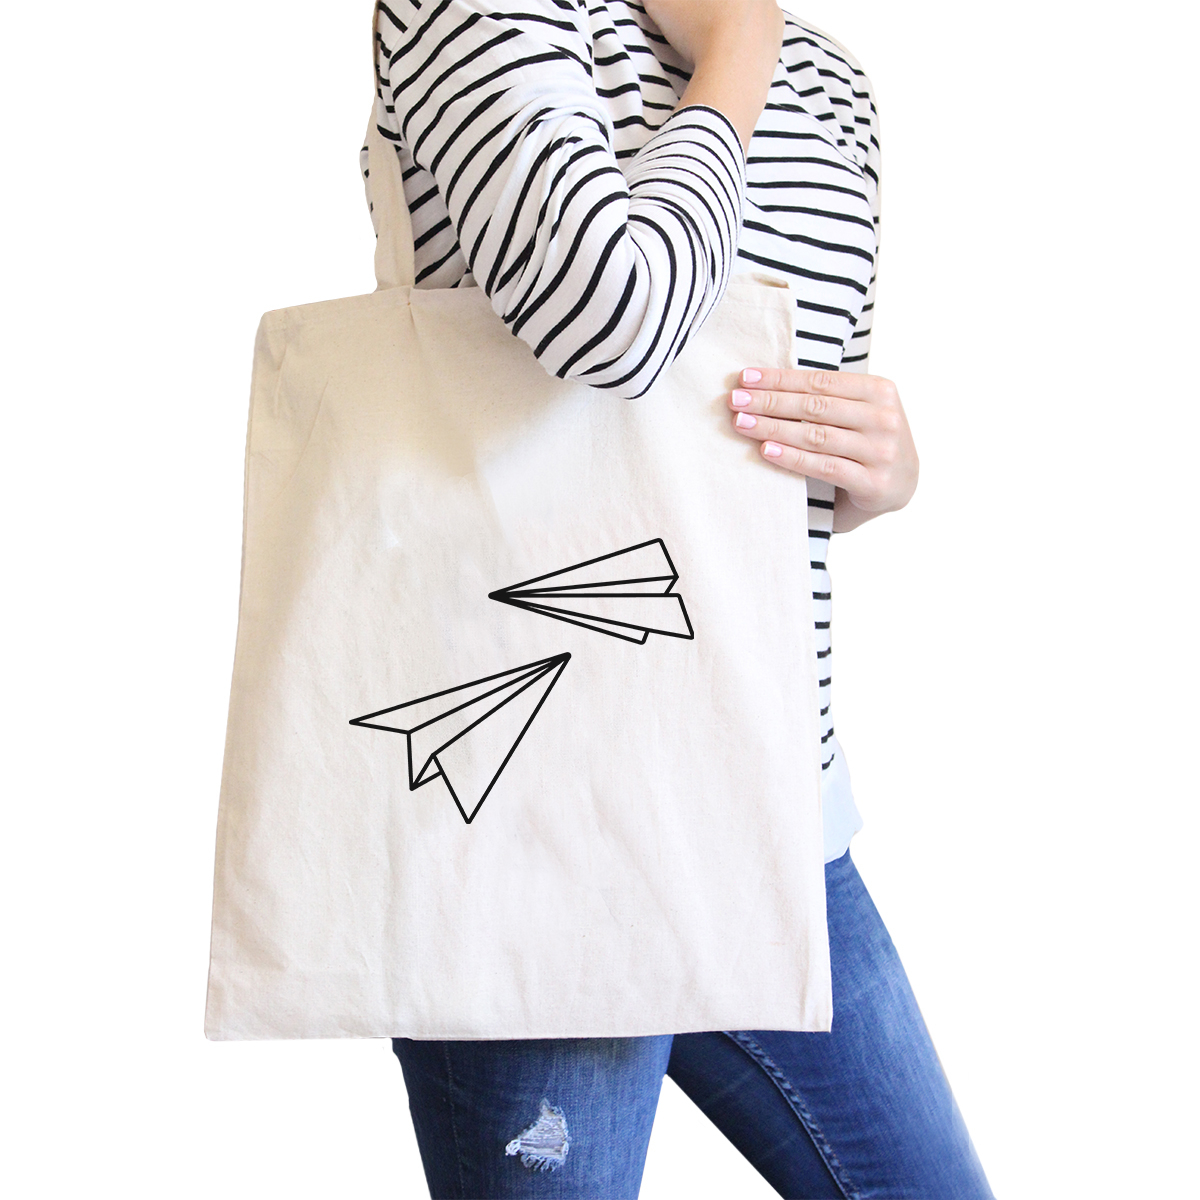 365 Printing Paper Airplane Natural Canvas Bag Cute Graphic Printed Eco (JCB027) photo